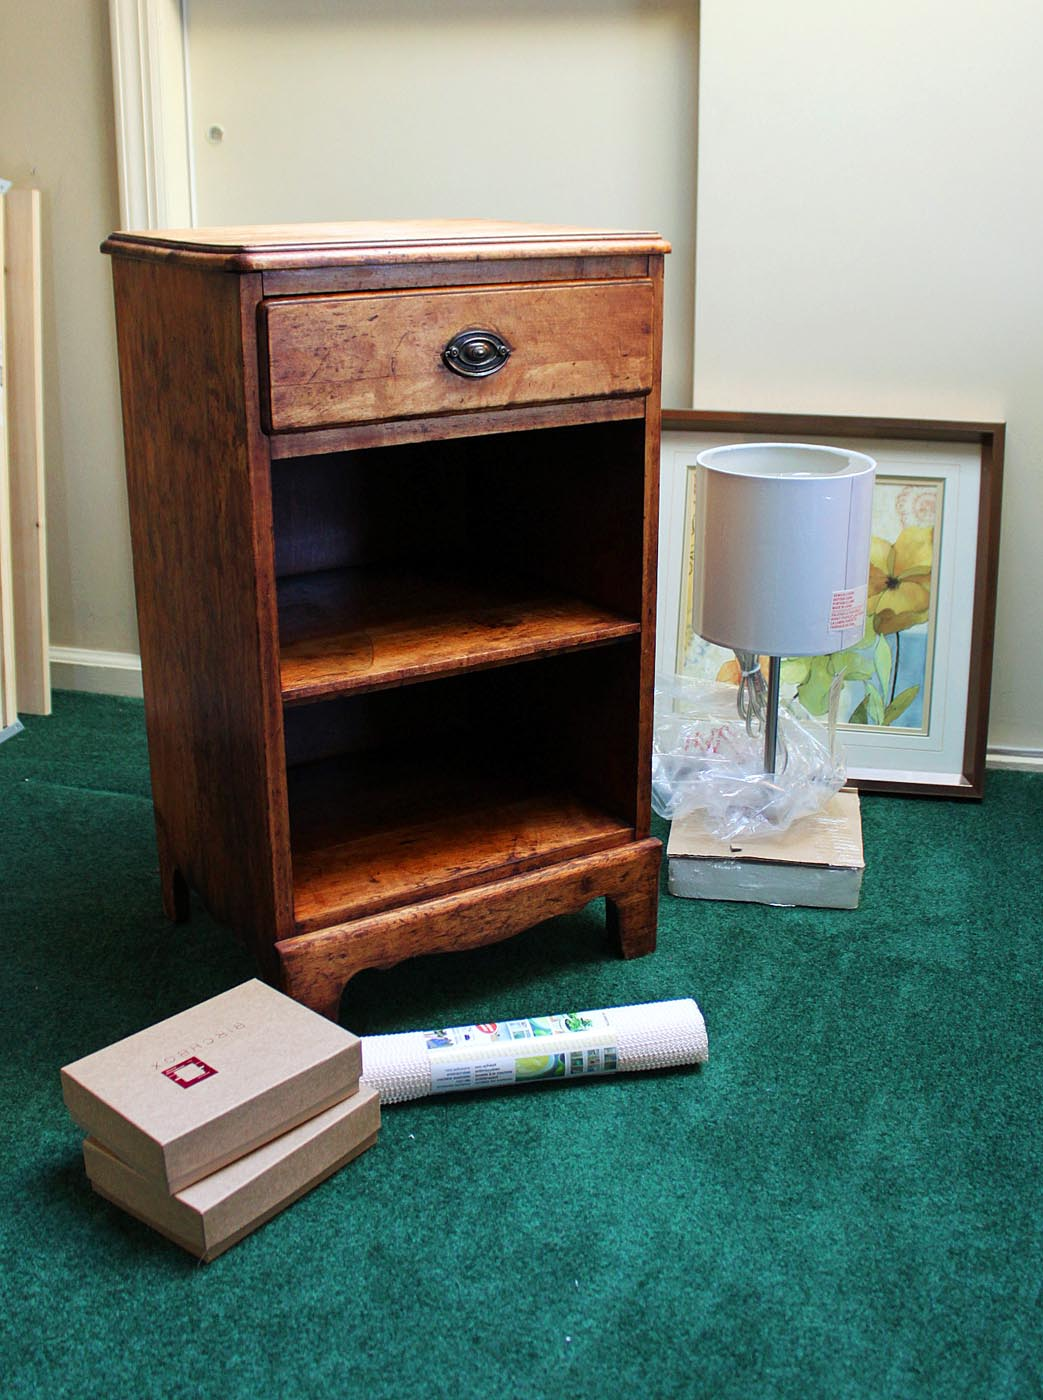 My Bedside Table: My Great Challenge: Organizing A Bedside Table